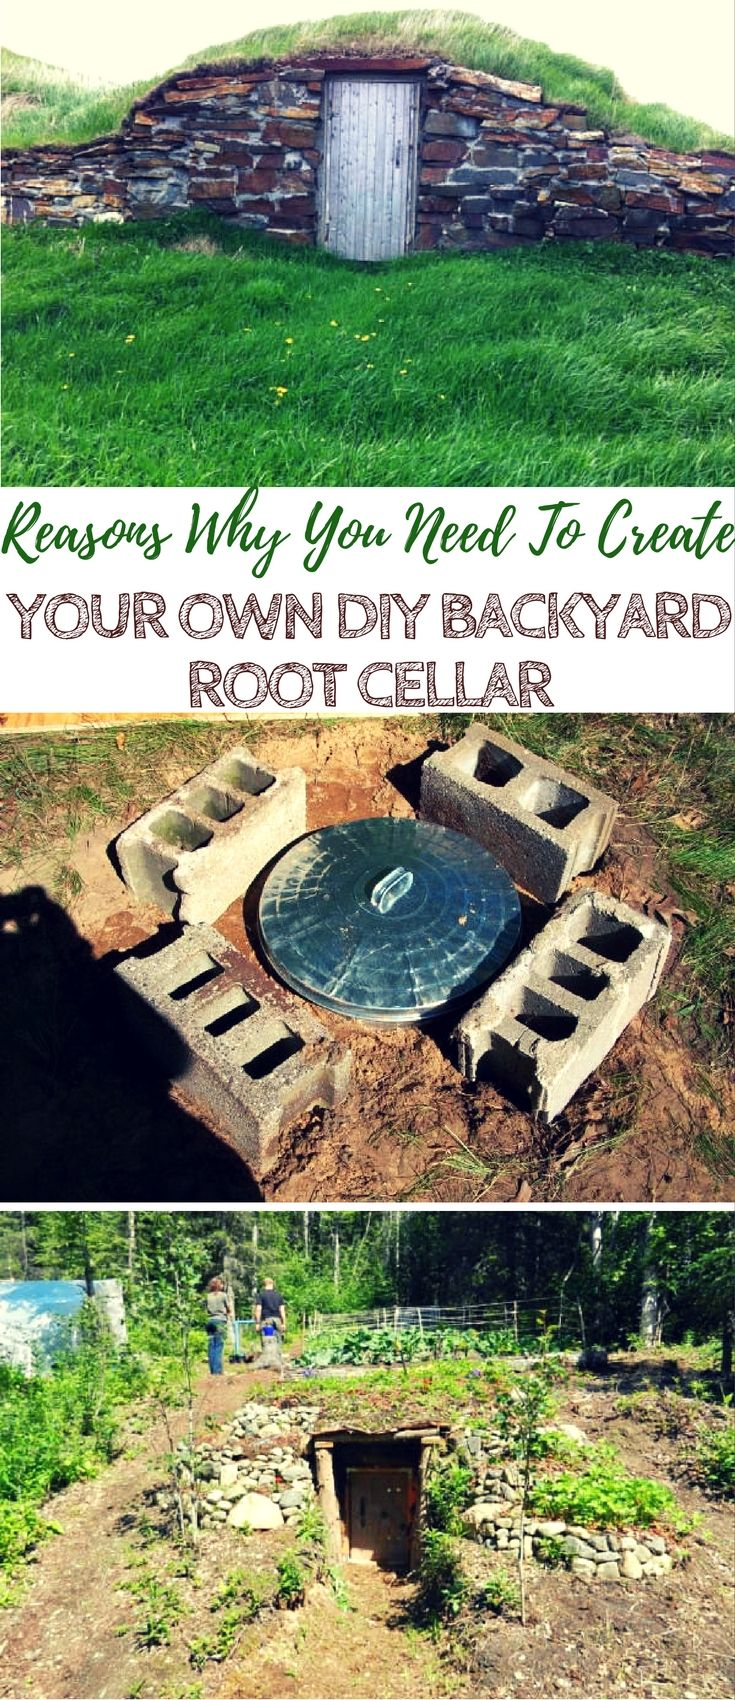 The Unbelievable Reasons Why You Need To Create Your Own DIY Backyard Root Cellar - Root cellars are one of the first ways that humans were able to store food, long before electricity was even a flicker in Thomas Edison's mind. Folks today are still build